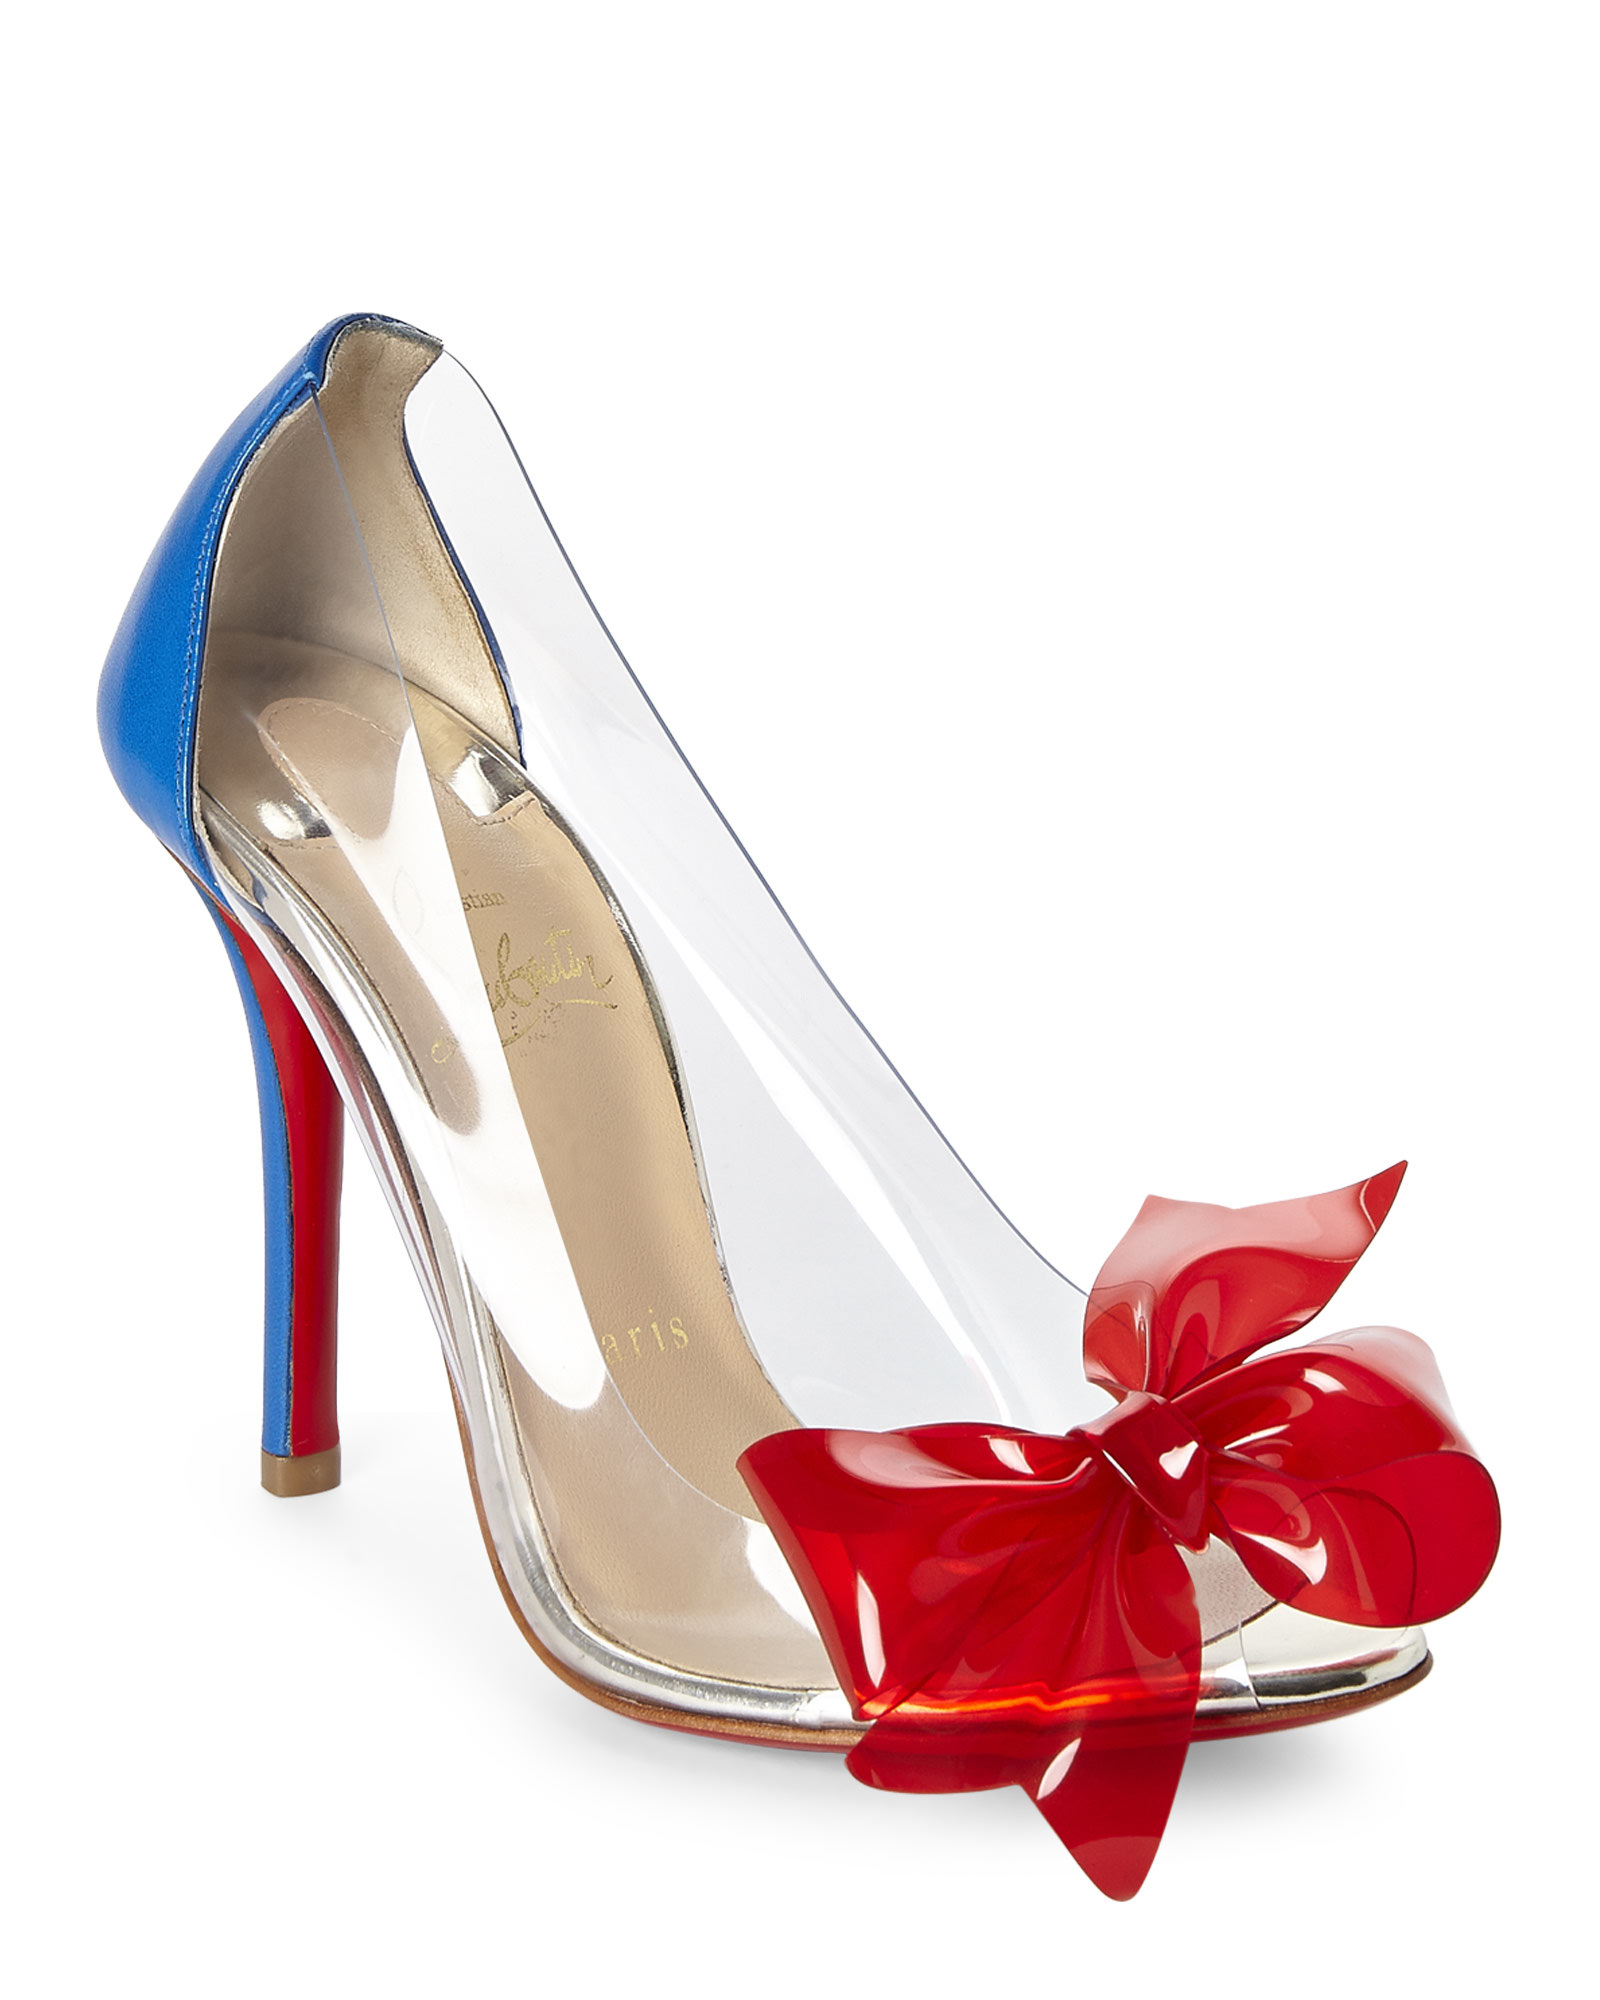 12790f2e7c2 Lyst - Christian Louboutin Clear Pvc Bow Pumps in Blue